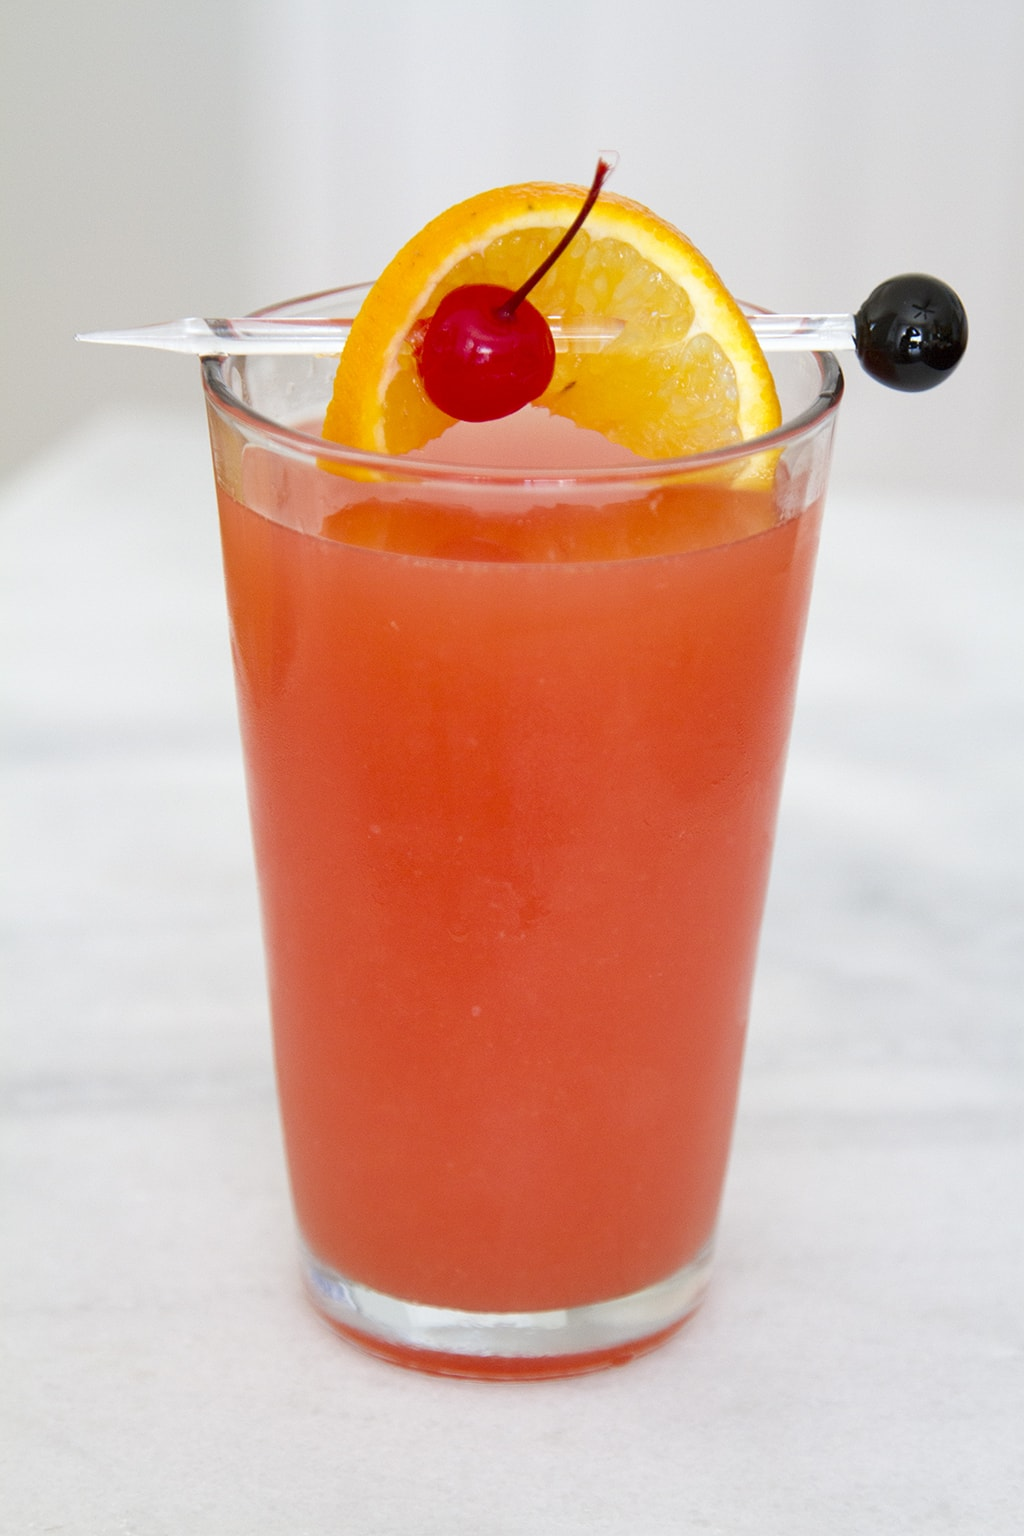 Hurricane drink with cherry and orange garnish